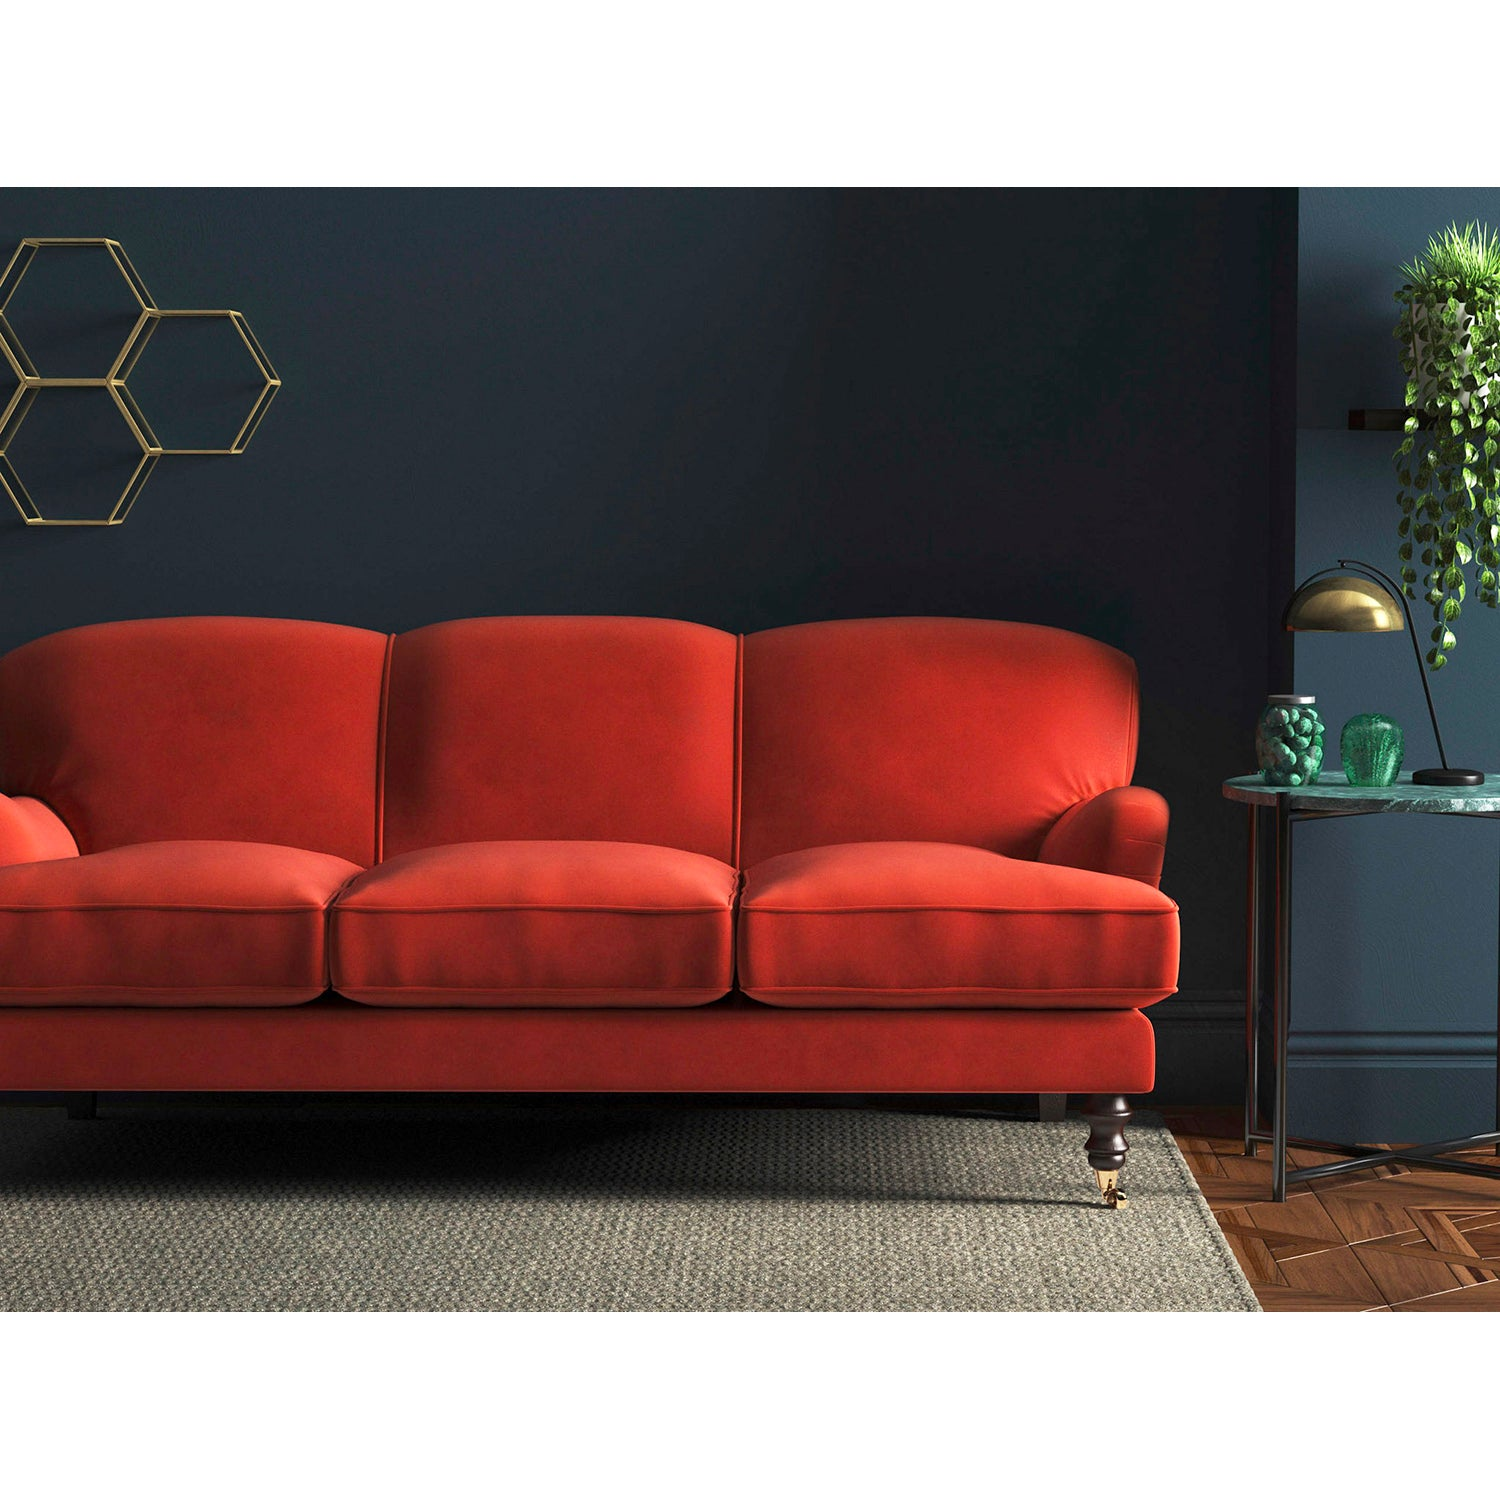 Sofa in a plain vibrant orange velvet upholstery fabric